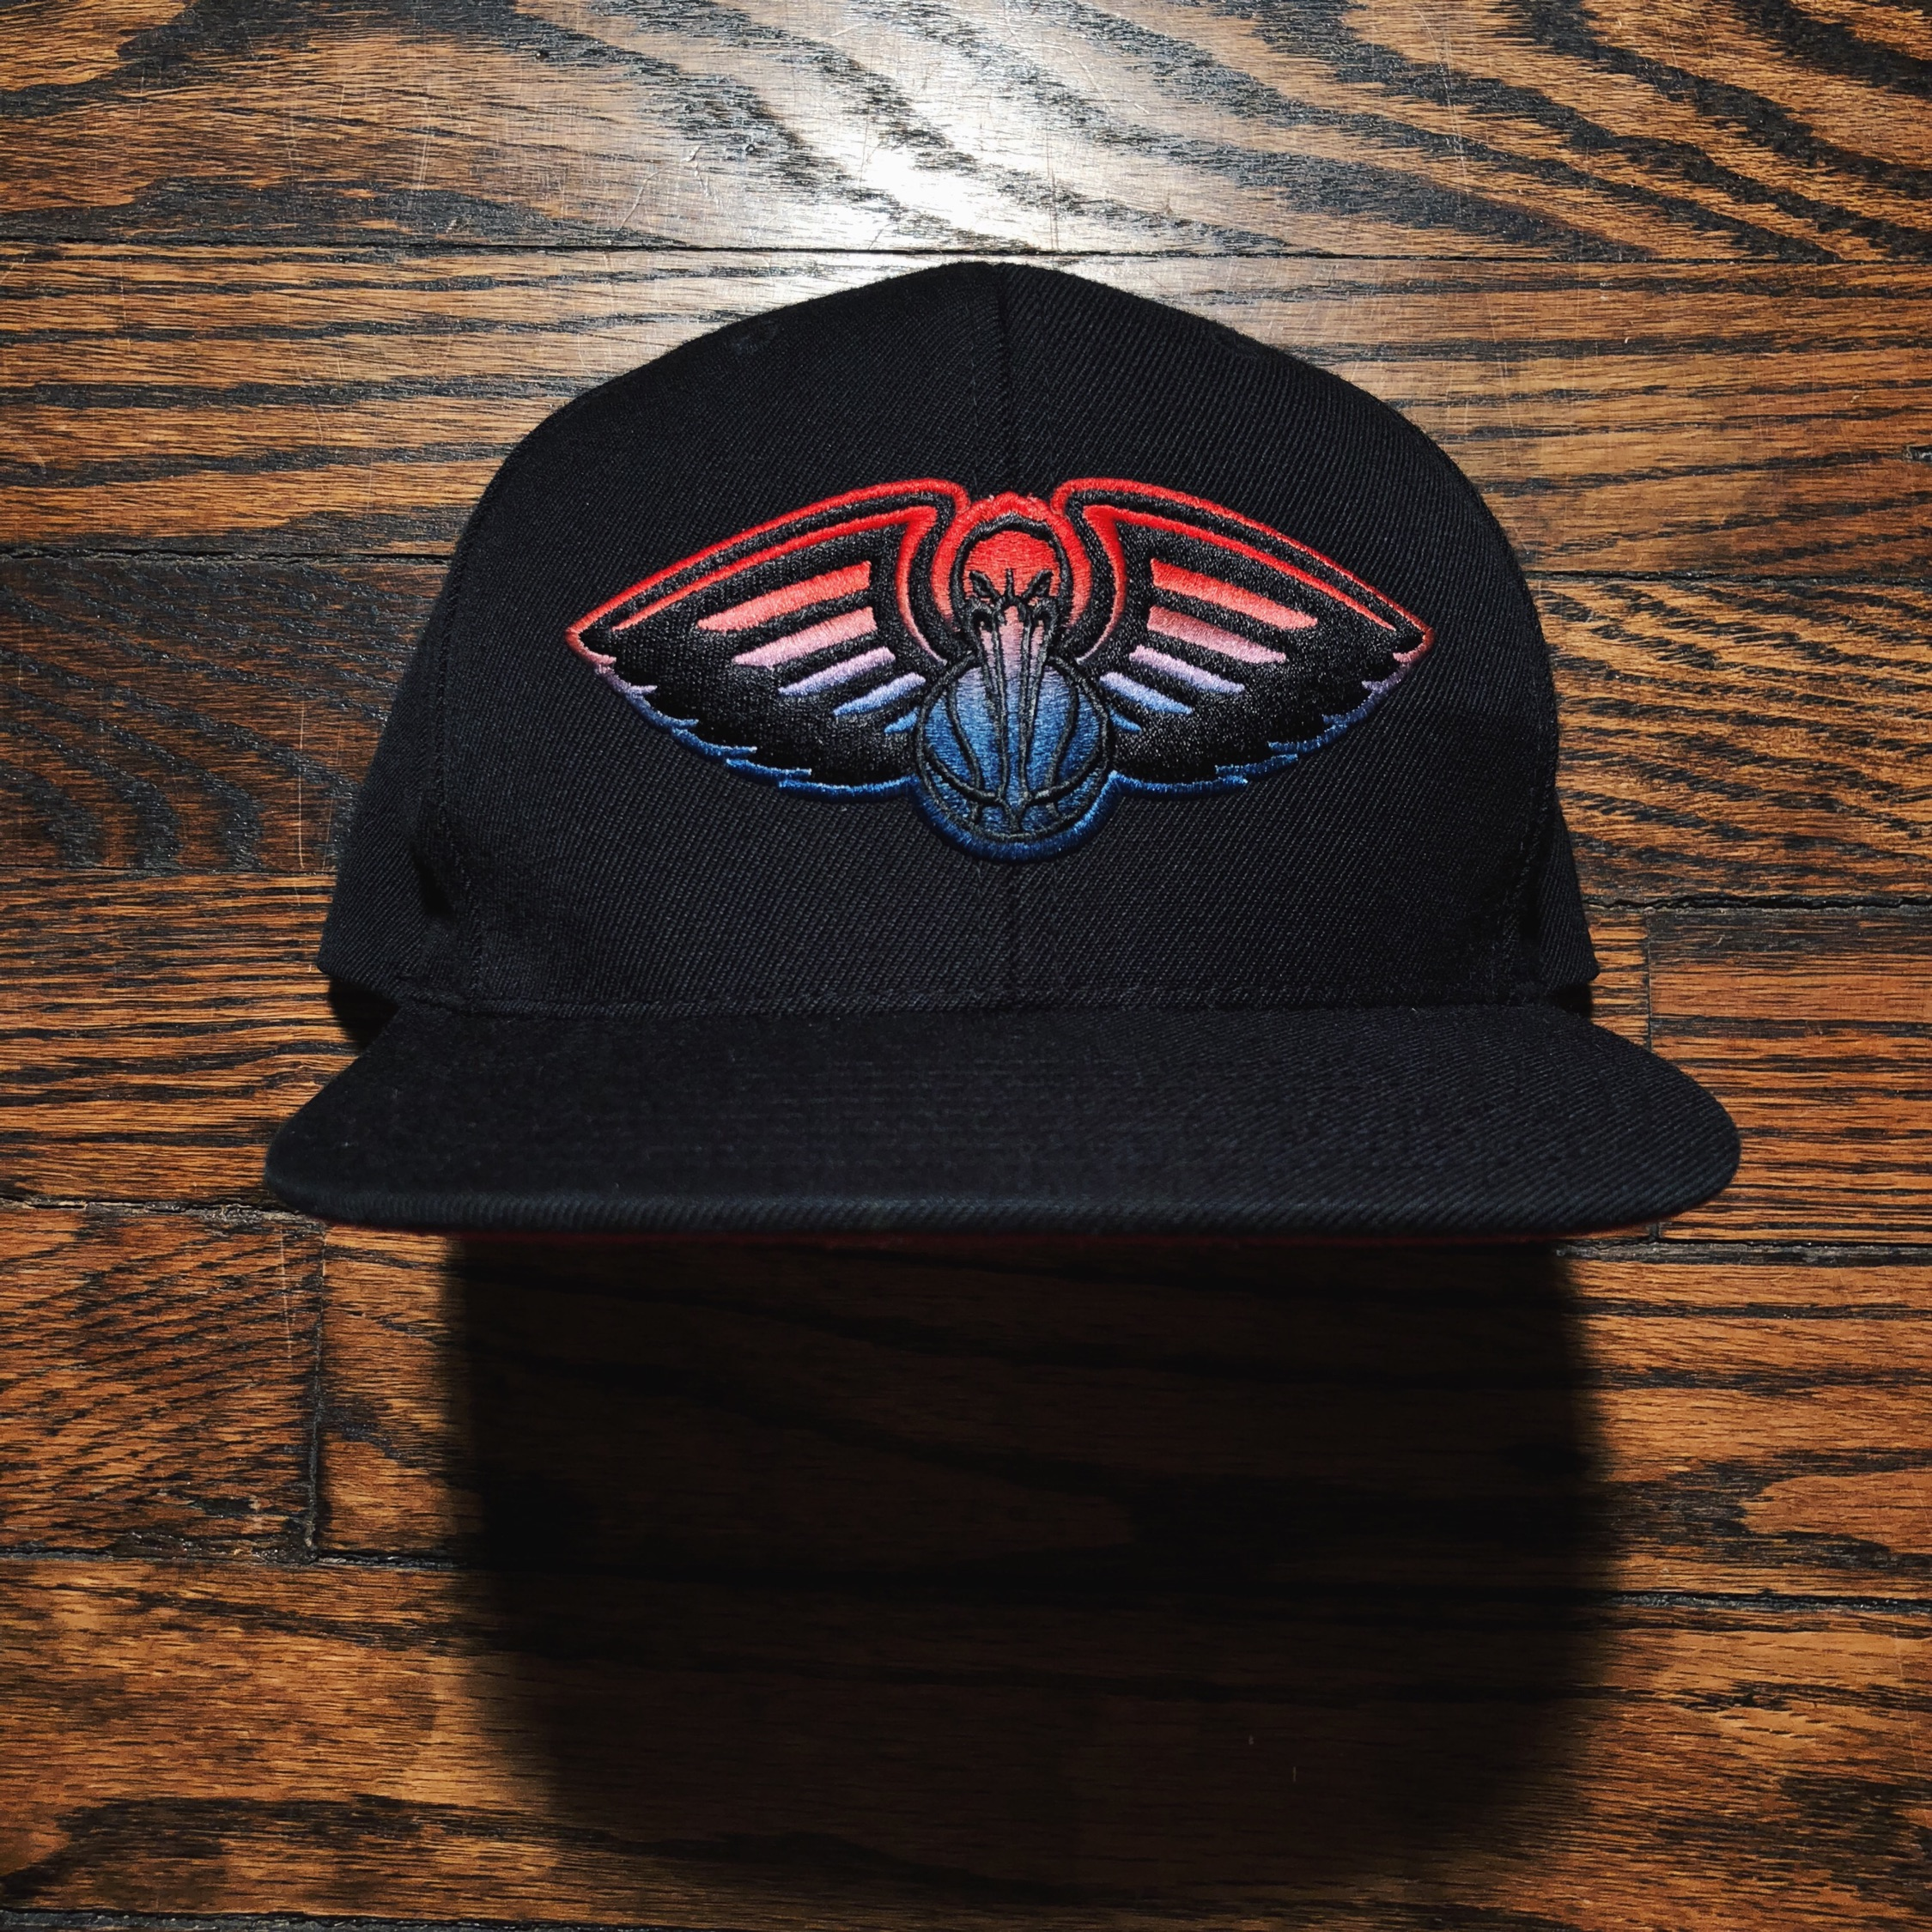 Mitchell Ness New Orleans Pelicans Snapback